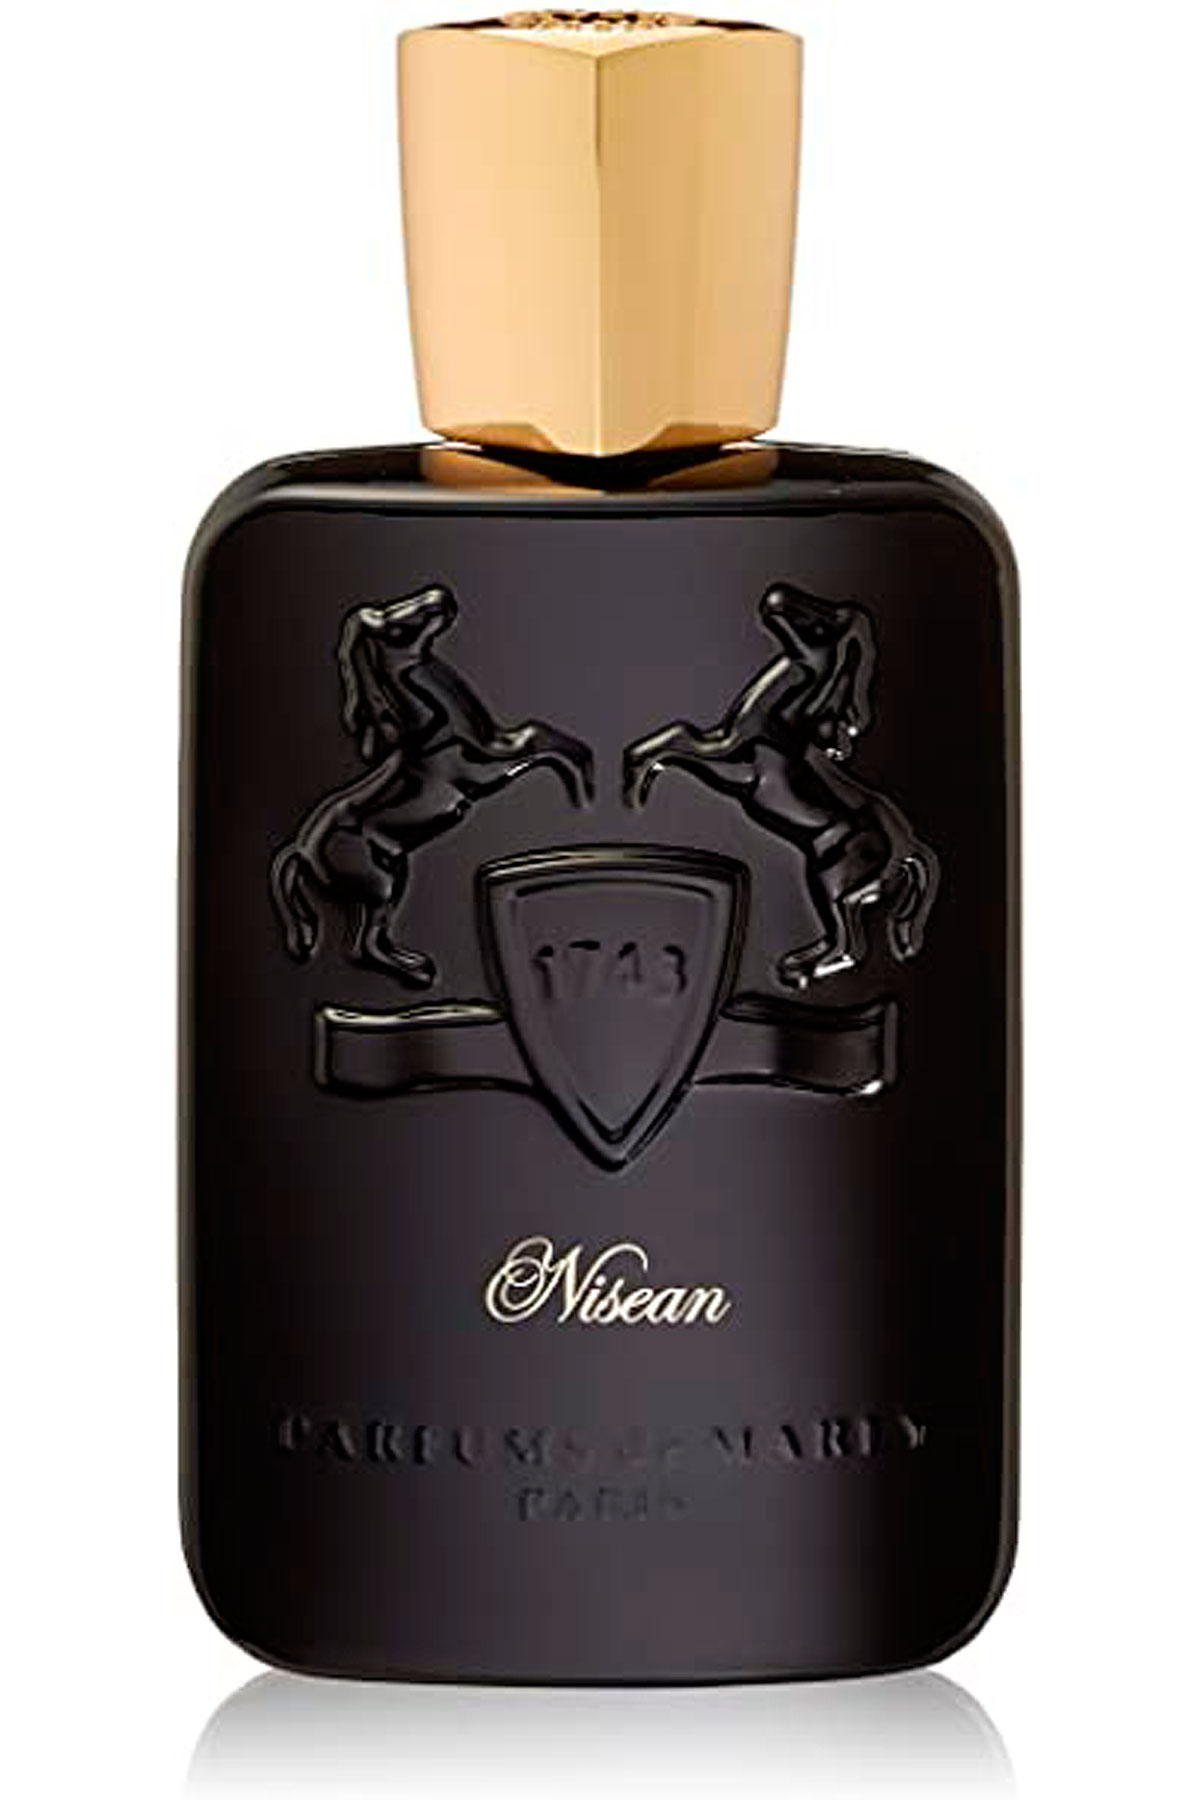 Parfums de Marly Fragrances for Men, Nisean - Eau De Parfum - 125 Ml, 2019, 125 ml